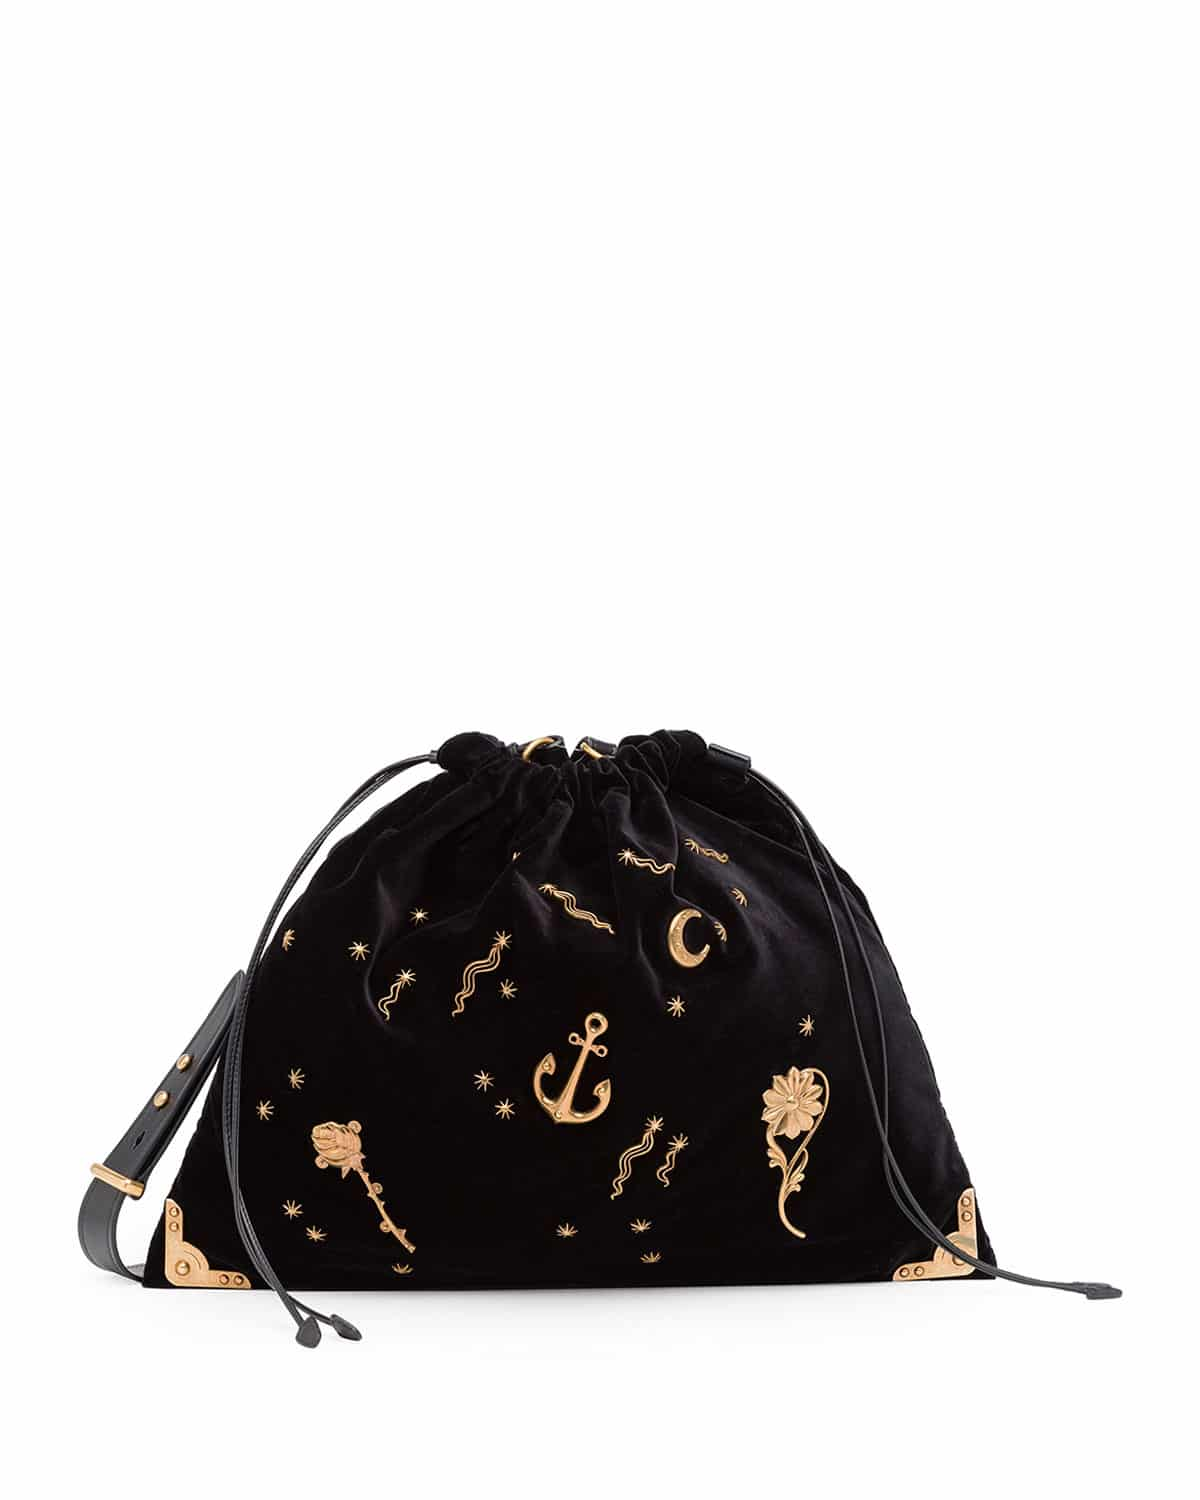 8be3b8f067 Prada Black Astrology-Embellished Large Drawstring Hobo Bag